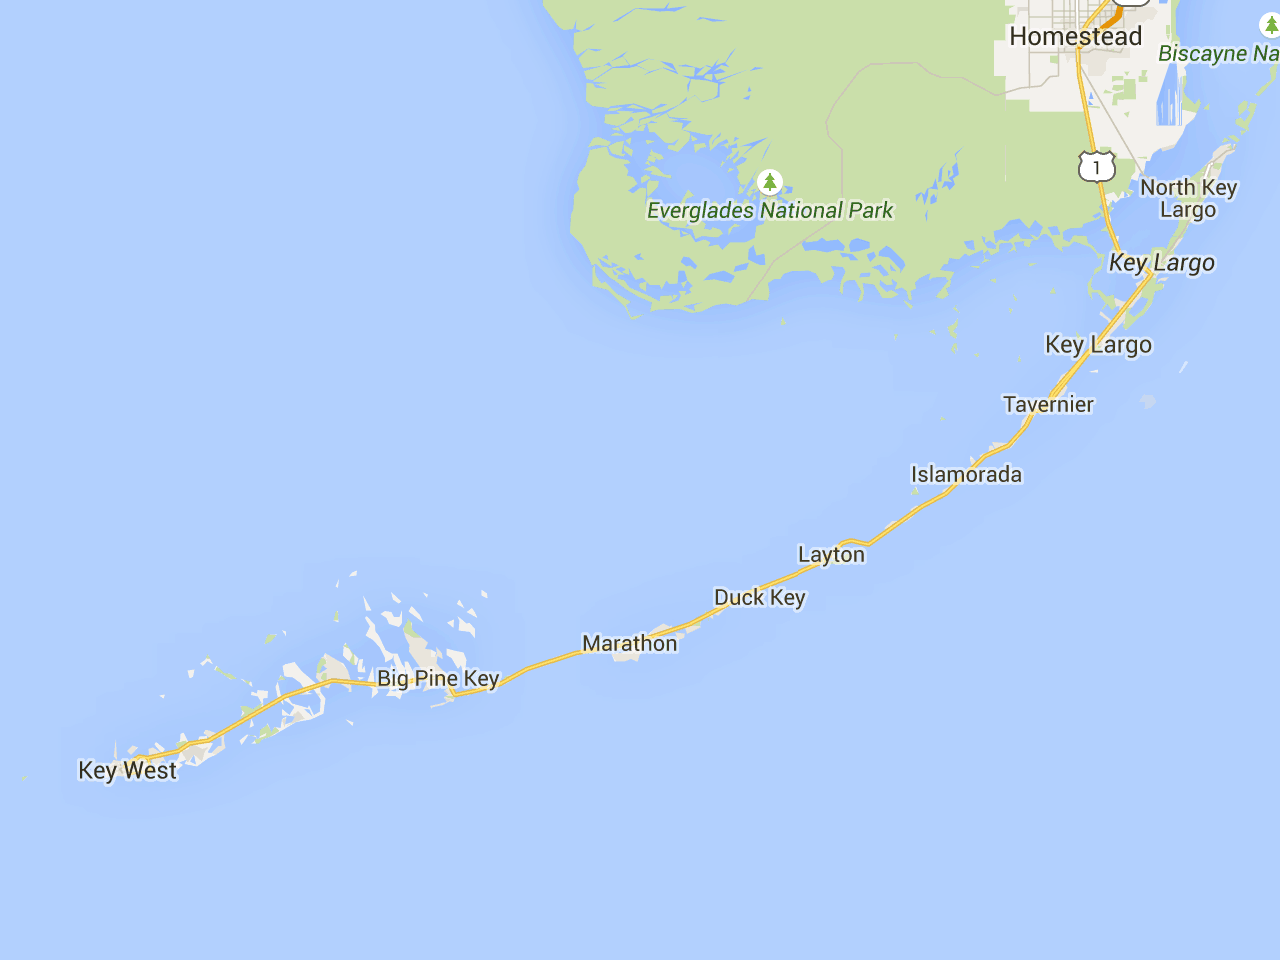 Map Of The Florida Keys With Mile Markers Road Trip: Florida Keys mile marker guide   Florida Rambler